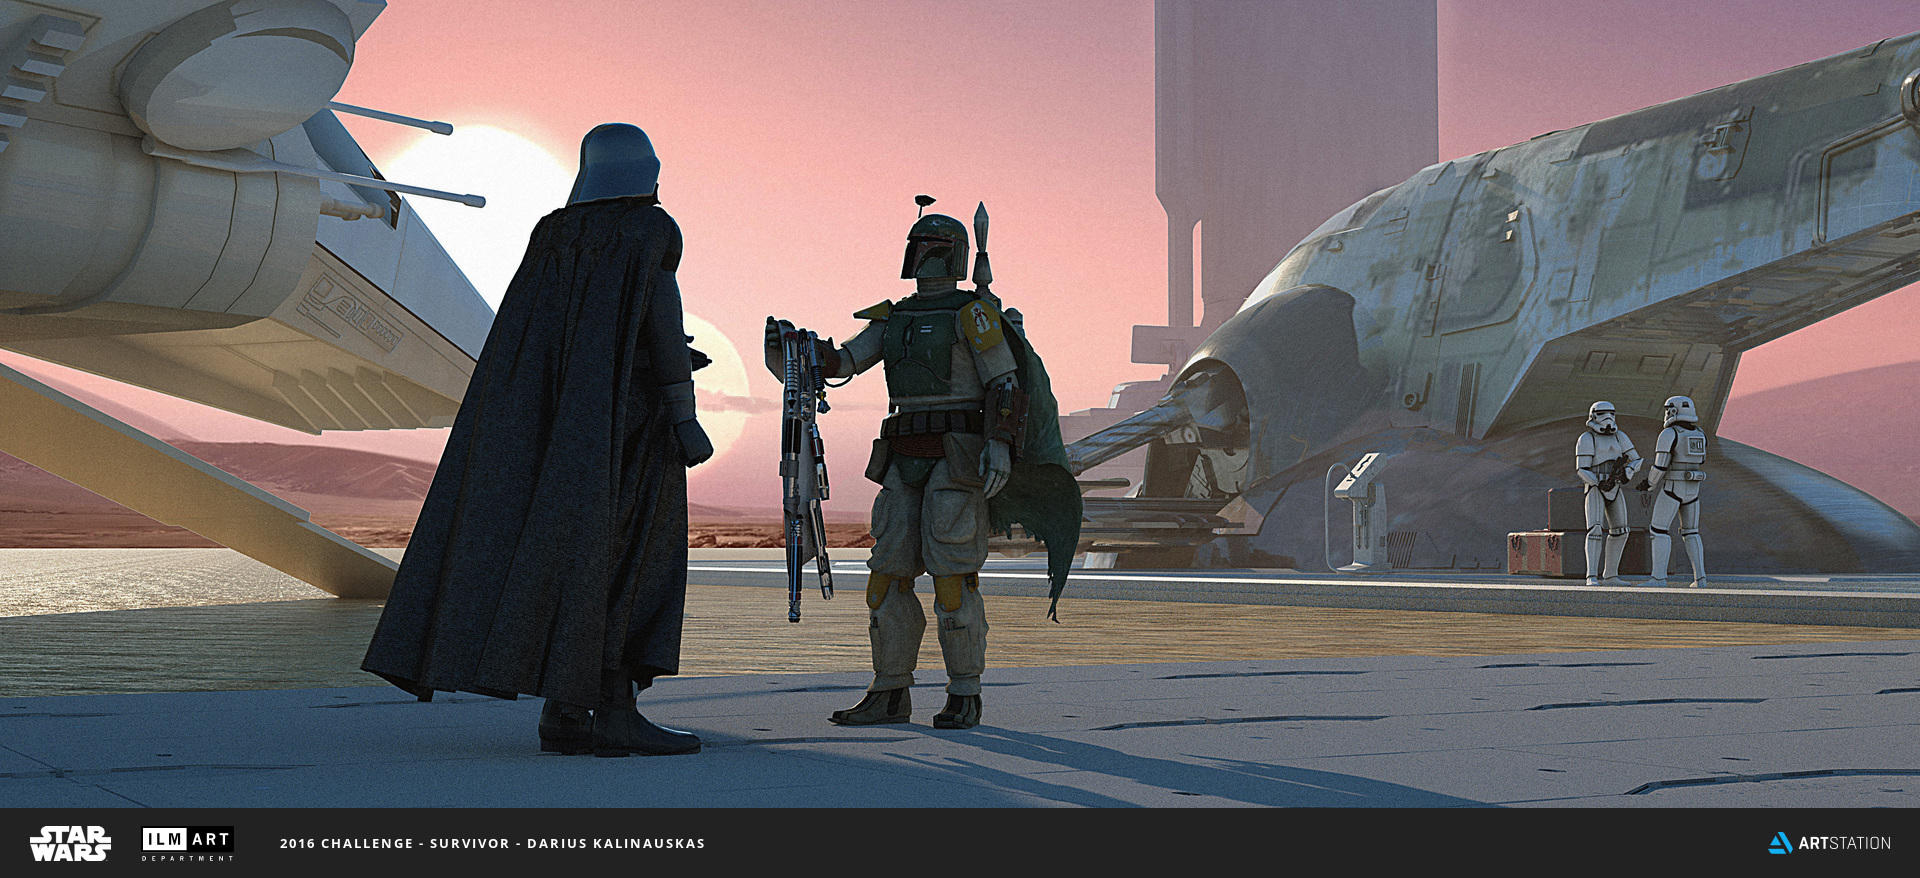 2016 ILM Art Department Challenge Entry by Darius Kalinauskas